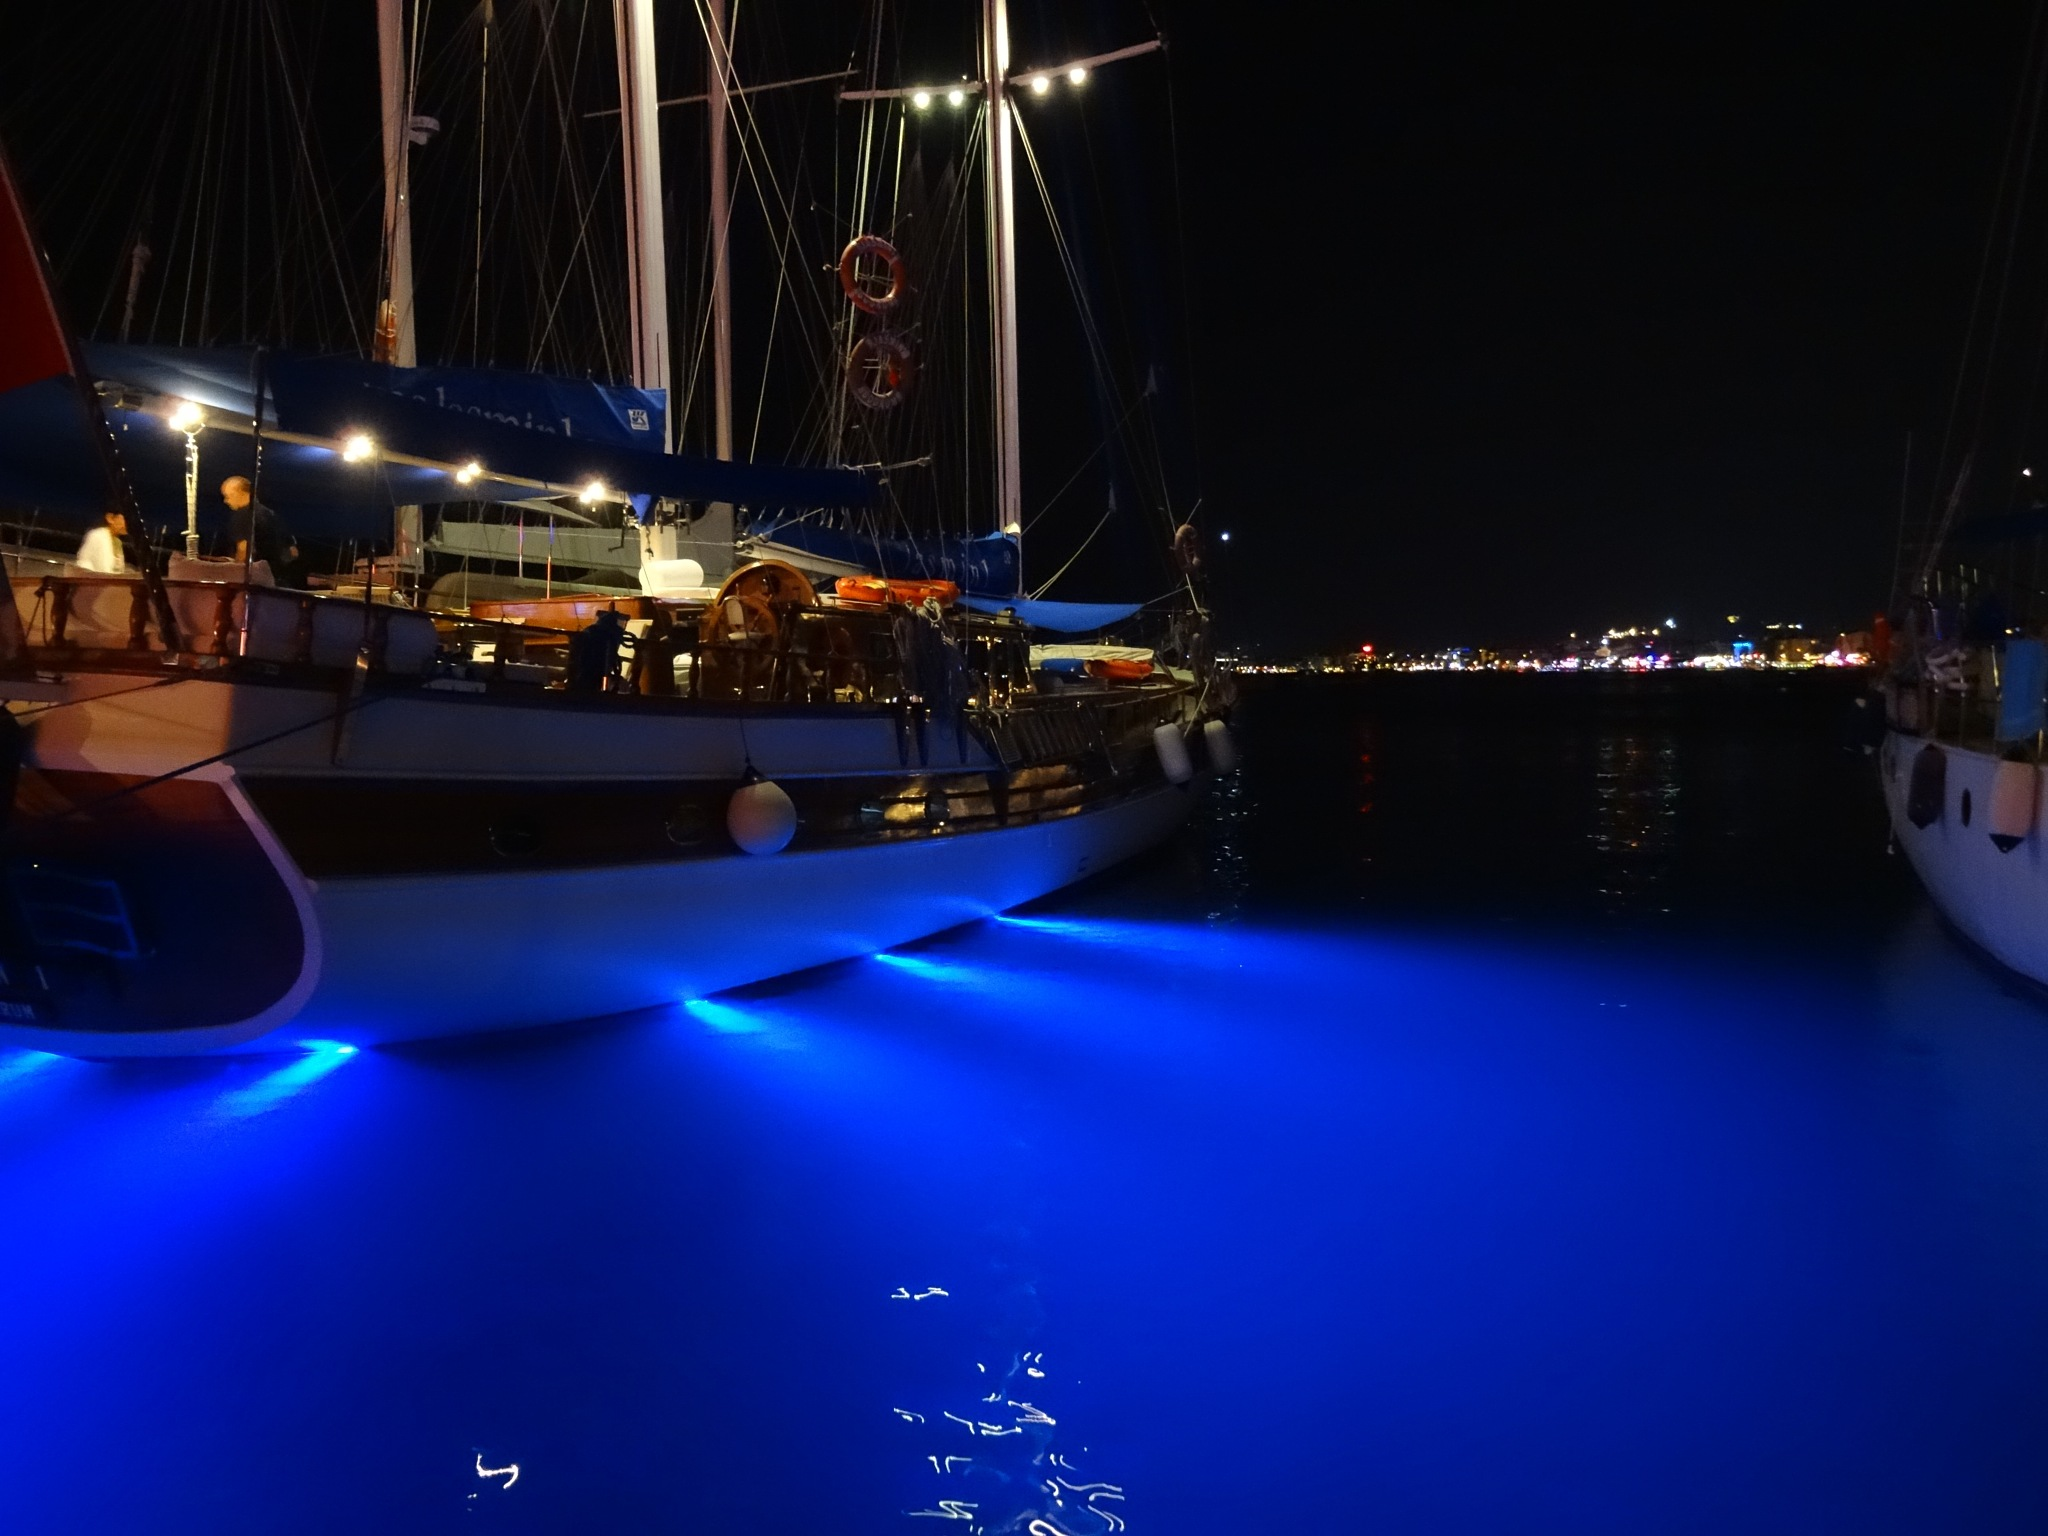 Boatlights by Davy Sloot